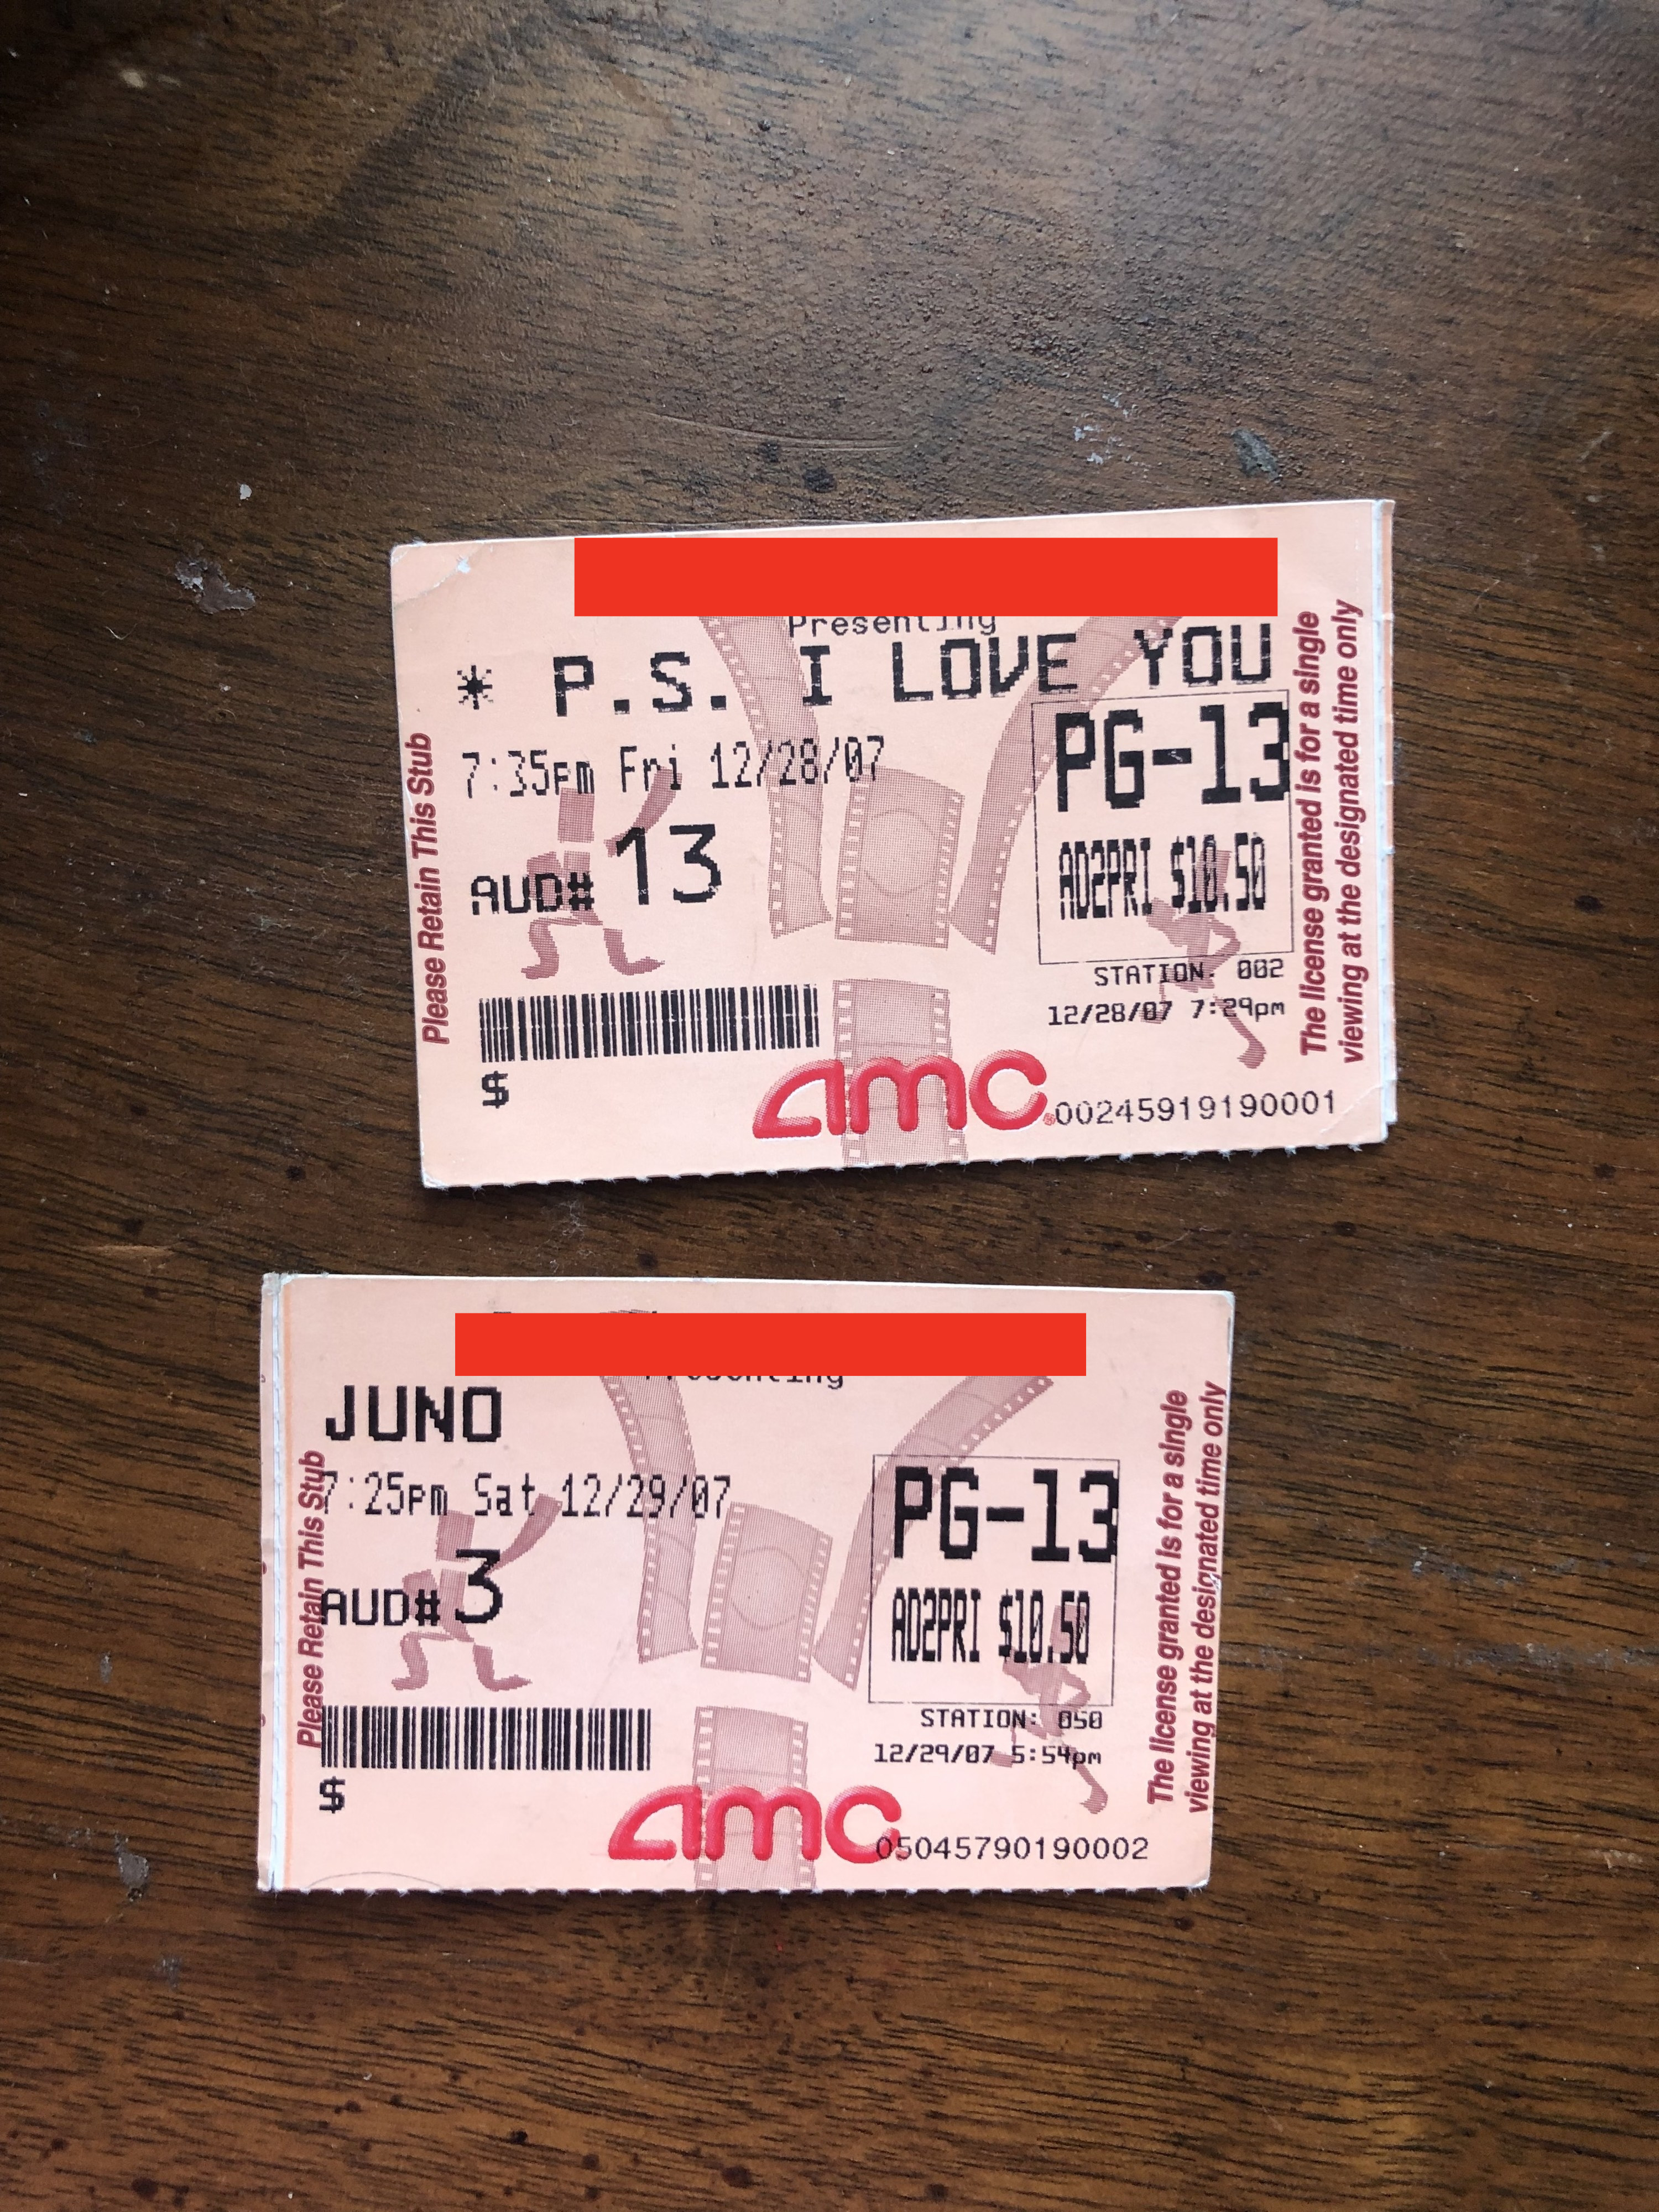 """""""Juno"""" and P.S. I Love You"""" ticket stubs laying next to each other"""